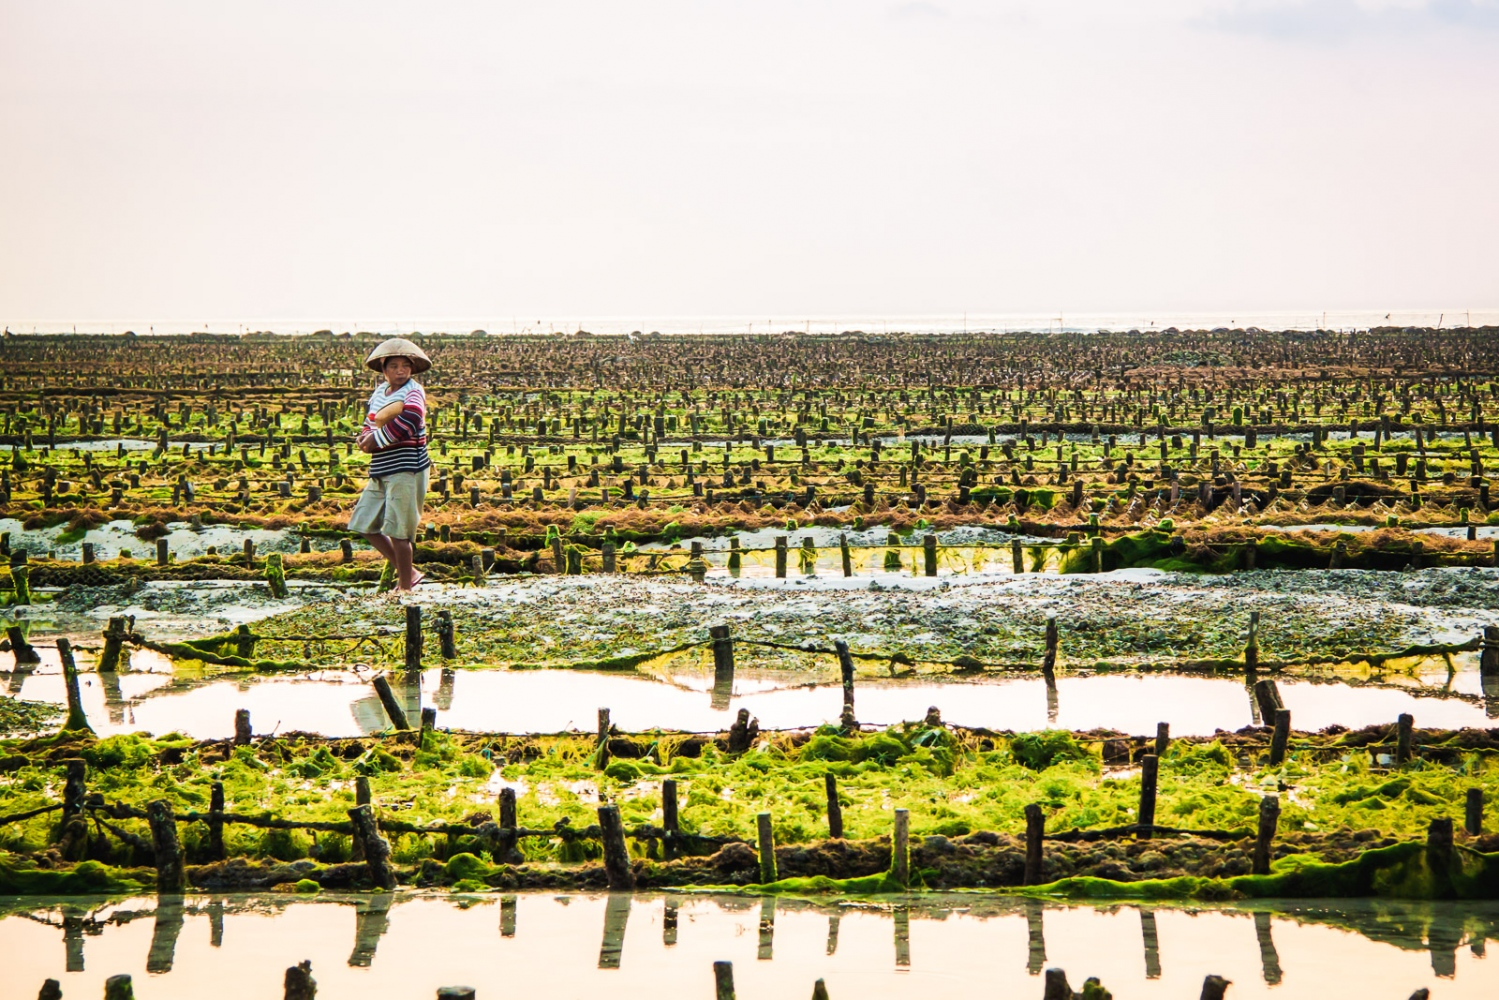 Nusa Lembongan, INDONESIA, August 13, 2011: A female farmer walks along sea weed plantations. Sea weed agriculture is one of the biggest sources of income for the inhabitants of the small island close to Bali. The seaweed is primarily being sold to the Japanese, who use it to create expensive beauty products.